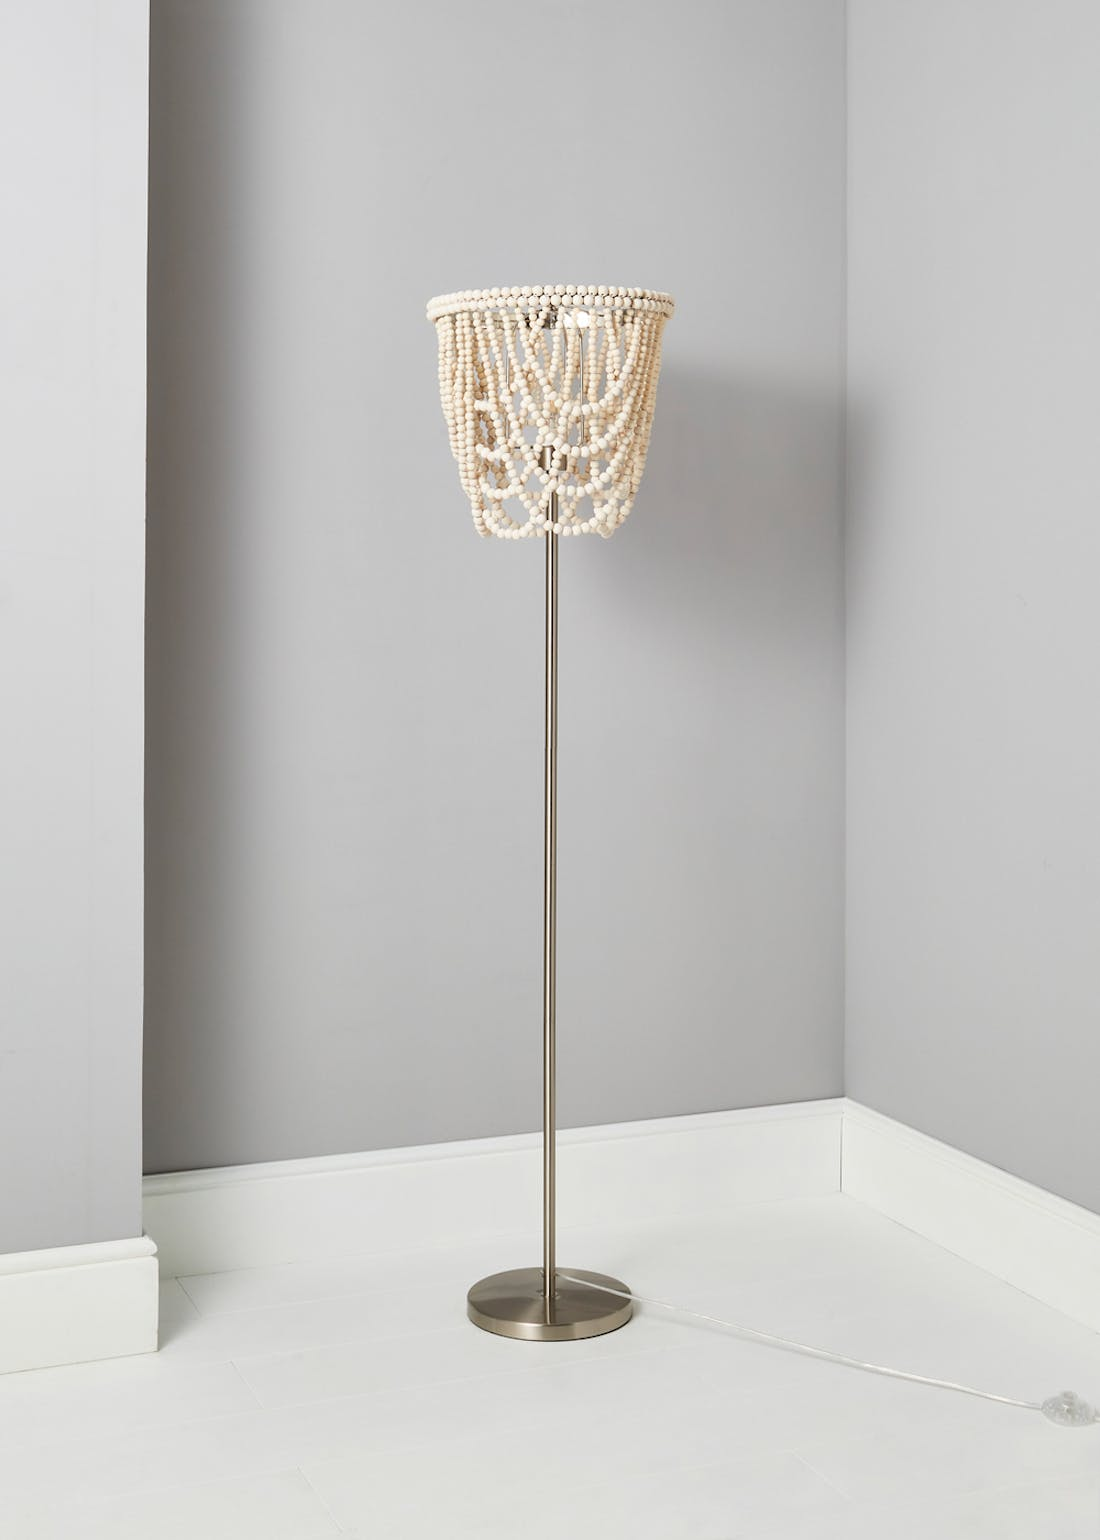 Beaded Floor Lamp (150cm x 38cm x 38cm)